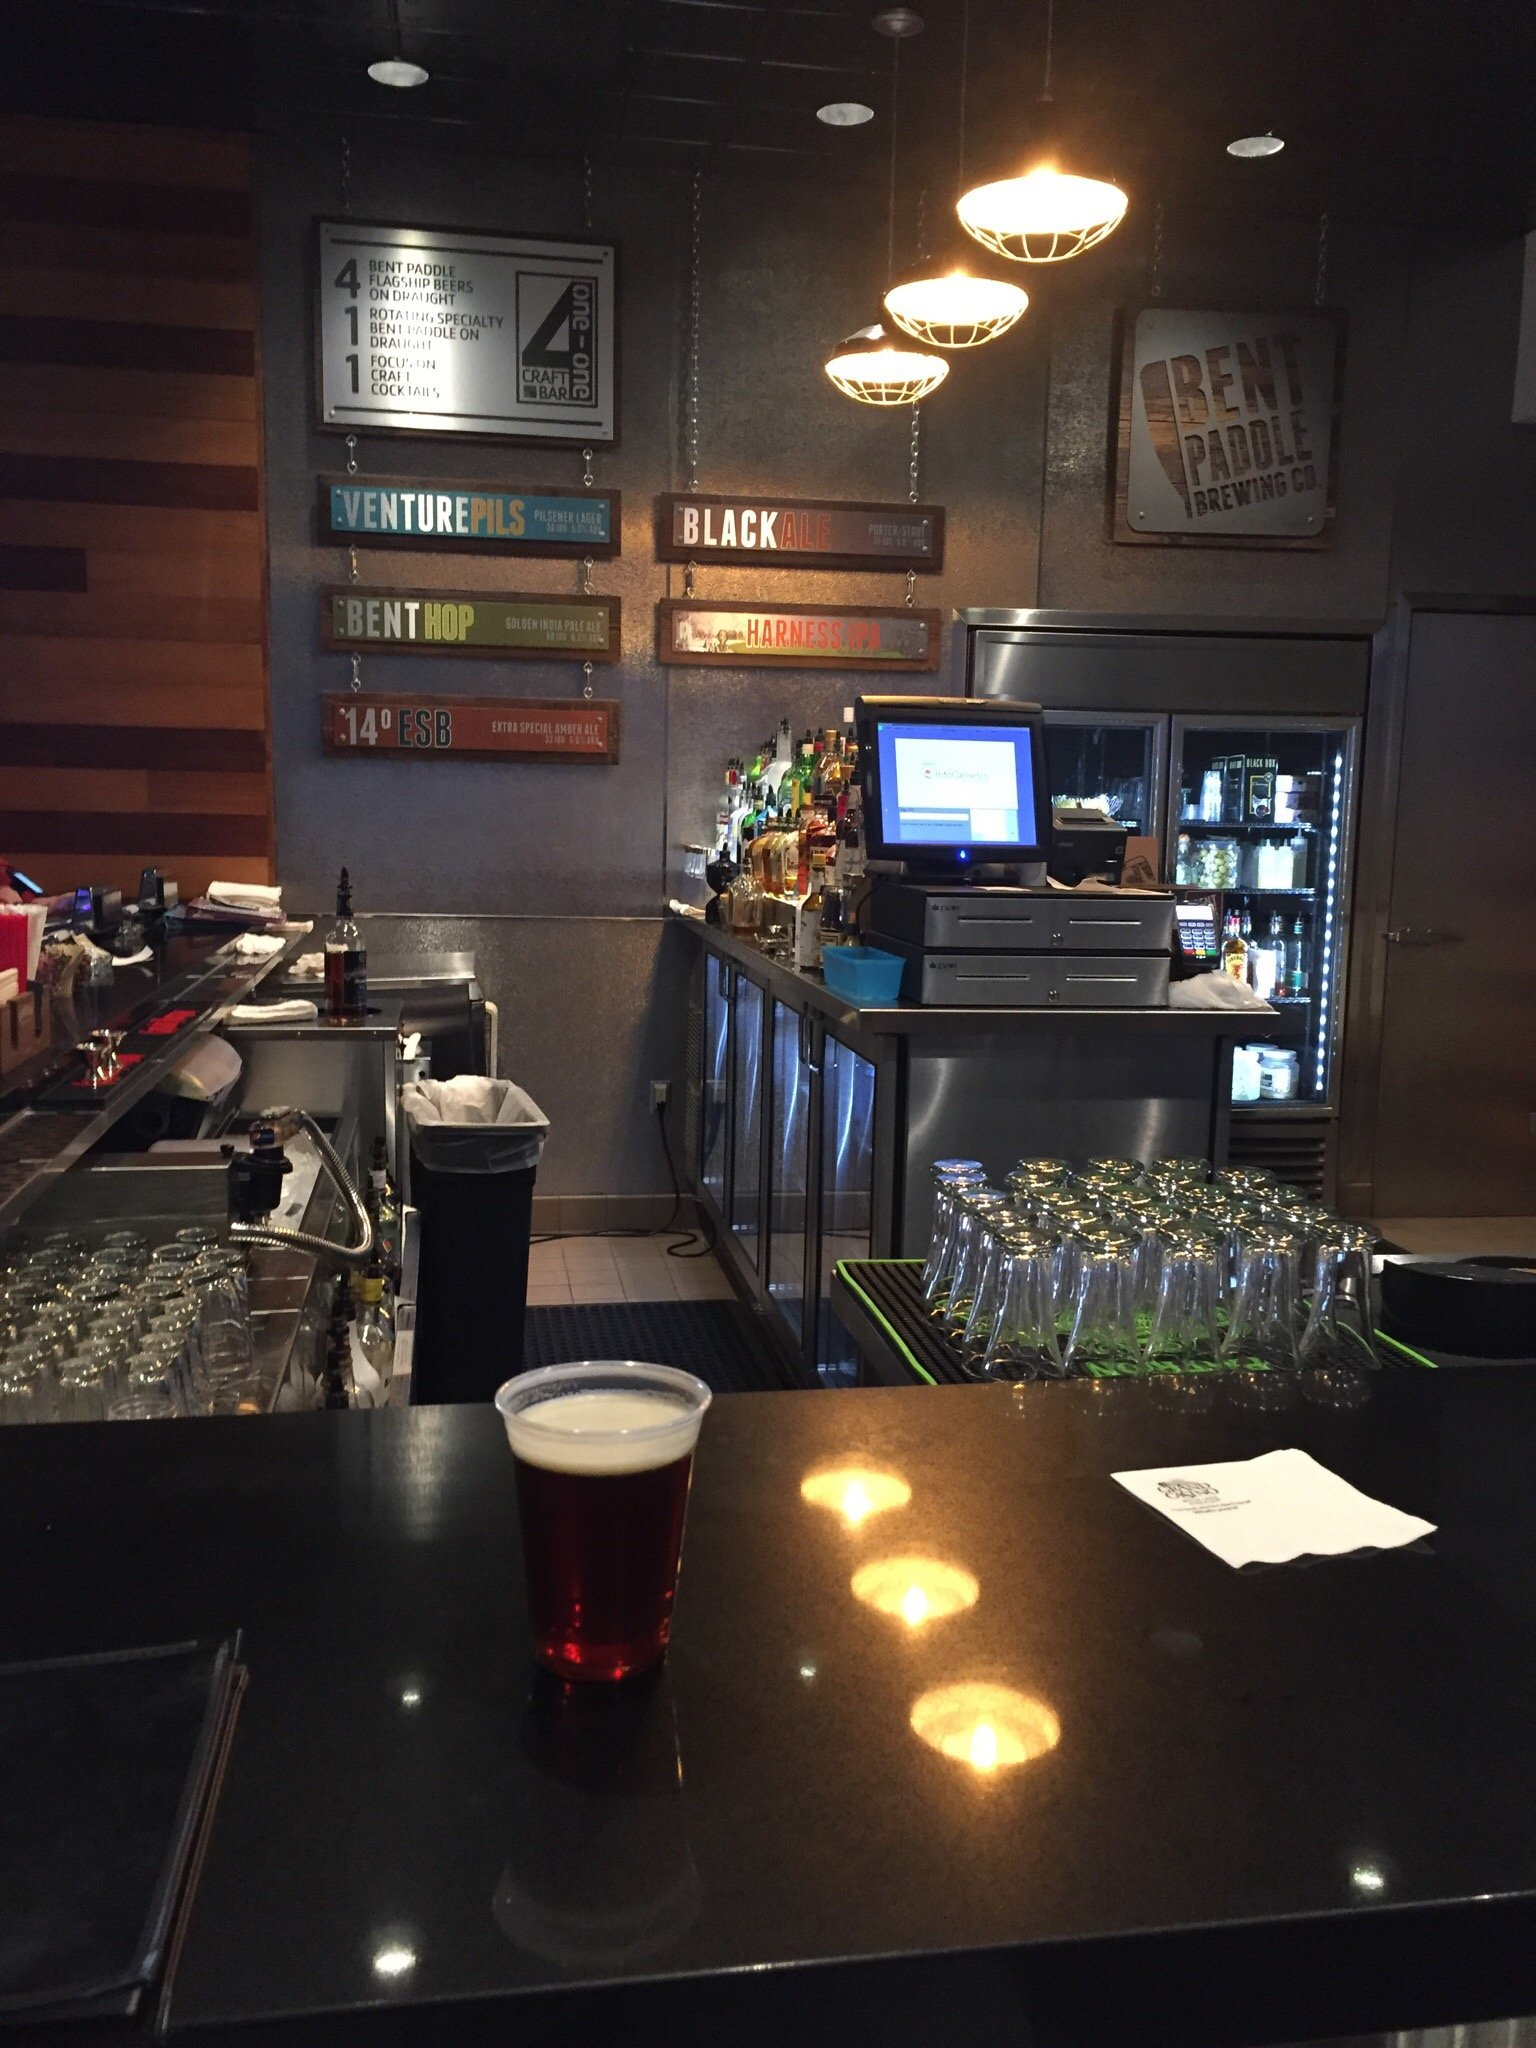 411 Craft Beer Bar - They have an amazing selection of good beer.